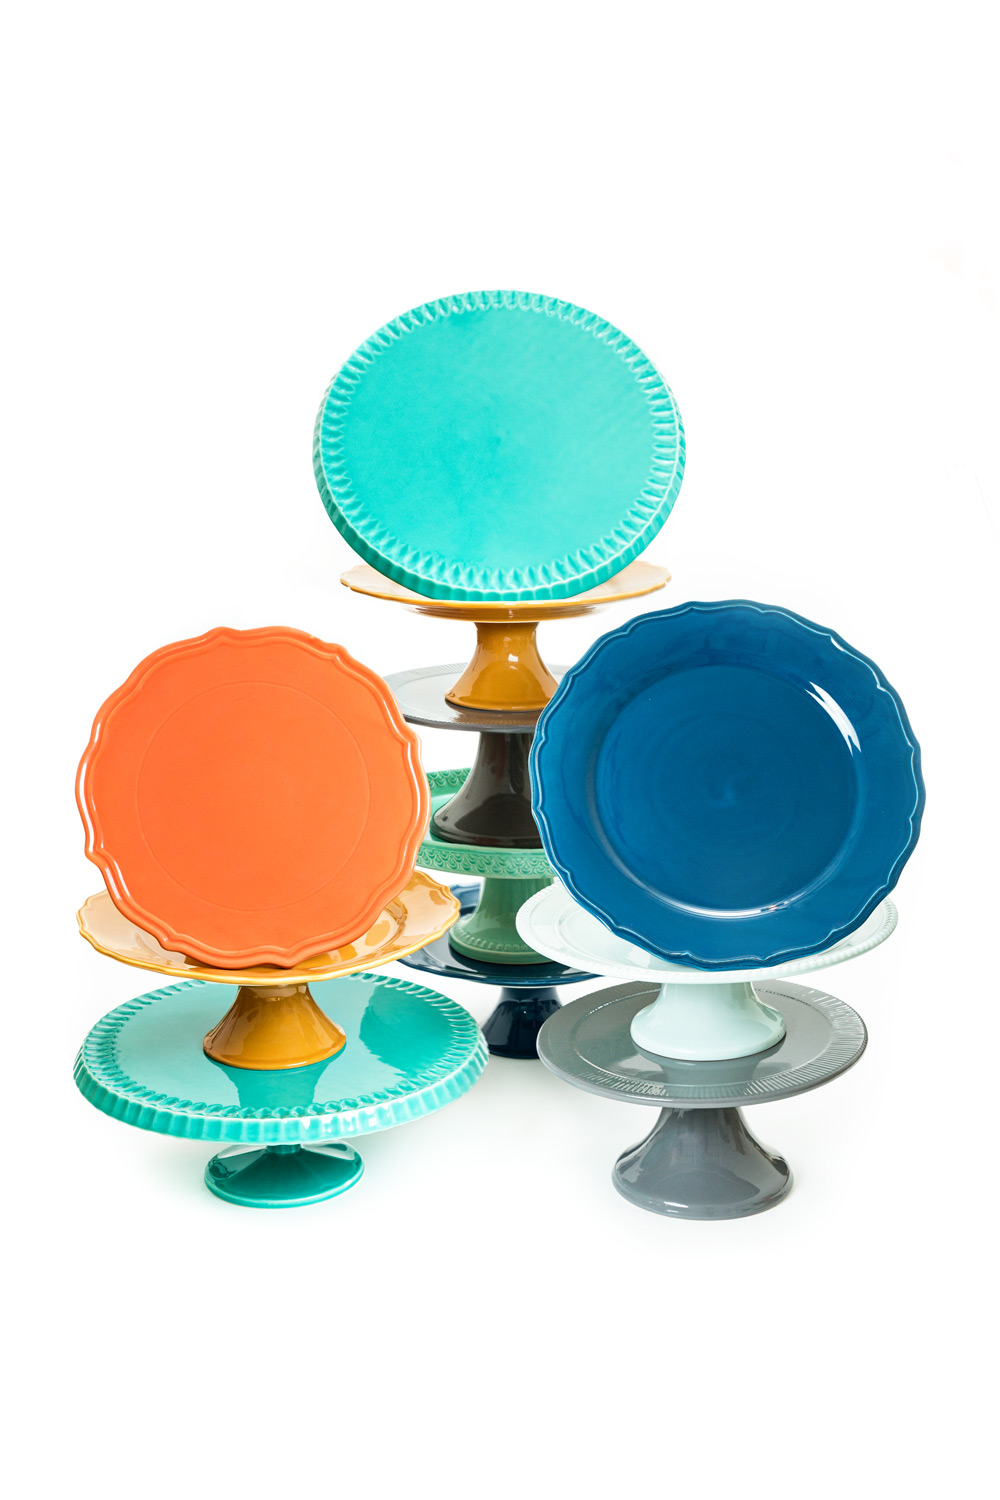 Blue orange navy turquoise and gray cake stands from Amorology Weddings in San Diego, #WeddingMinimalismProject by Cavin Elizabeth Photography